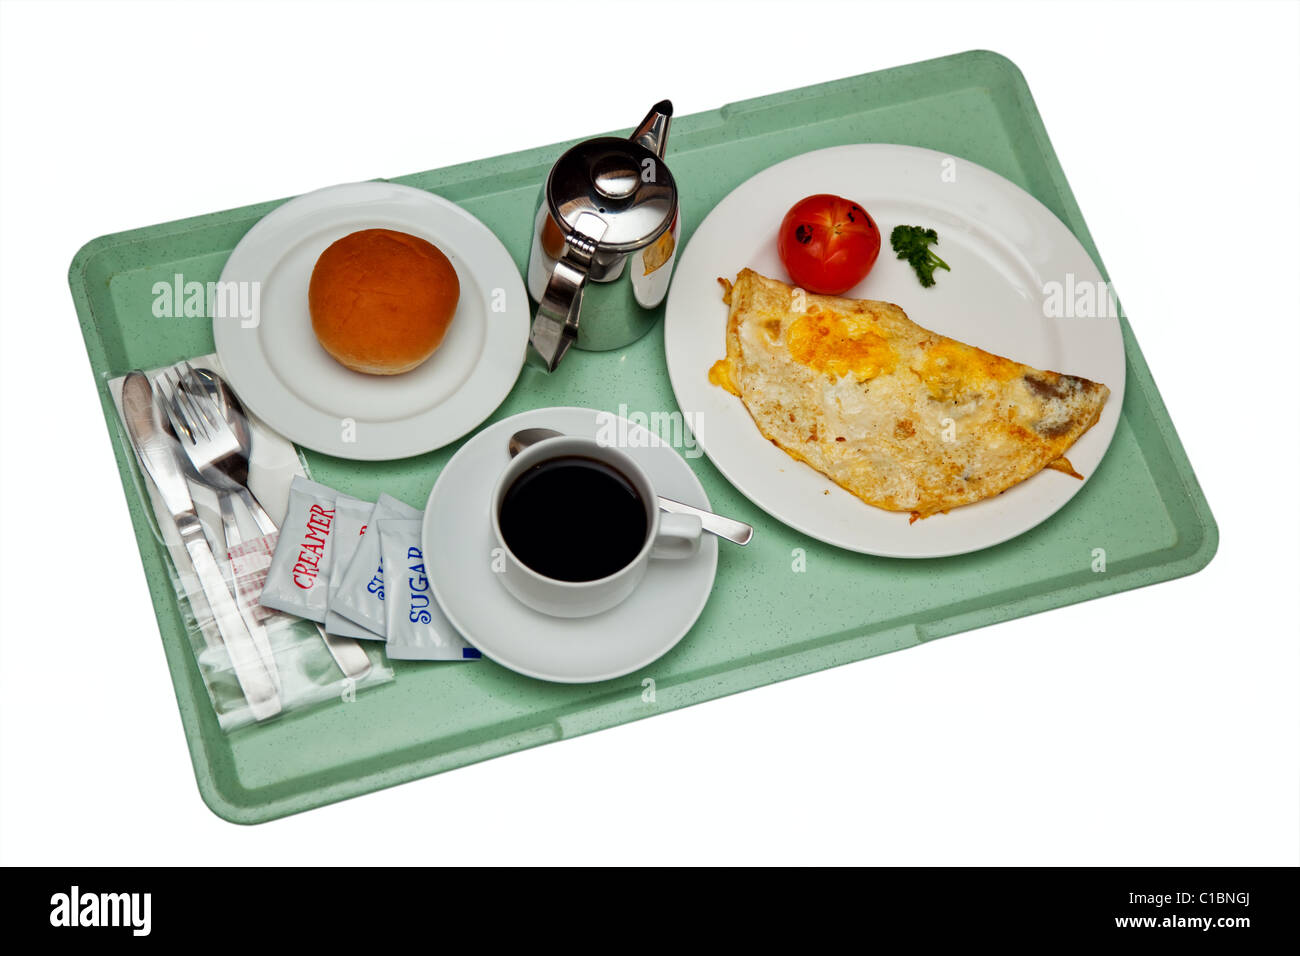 Breakfast on a tray isolated on white background - Stock Image